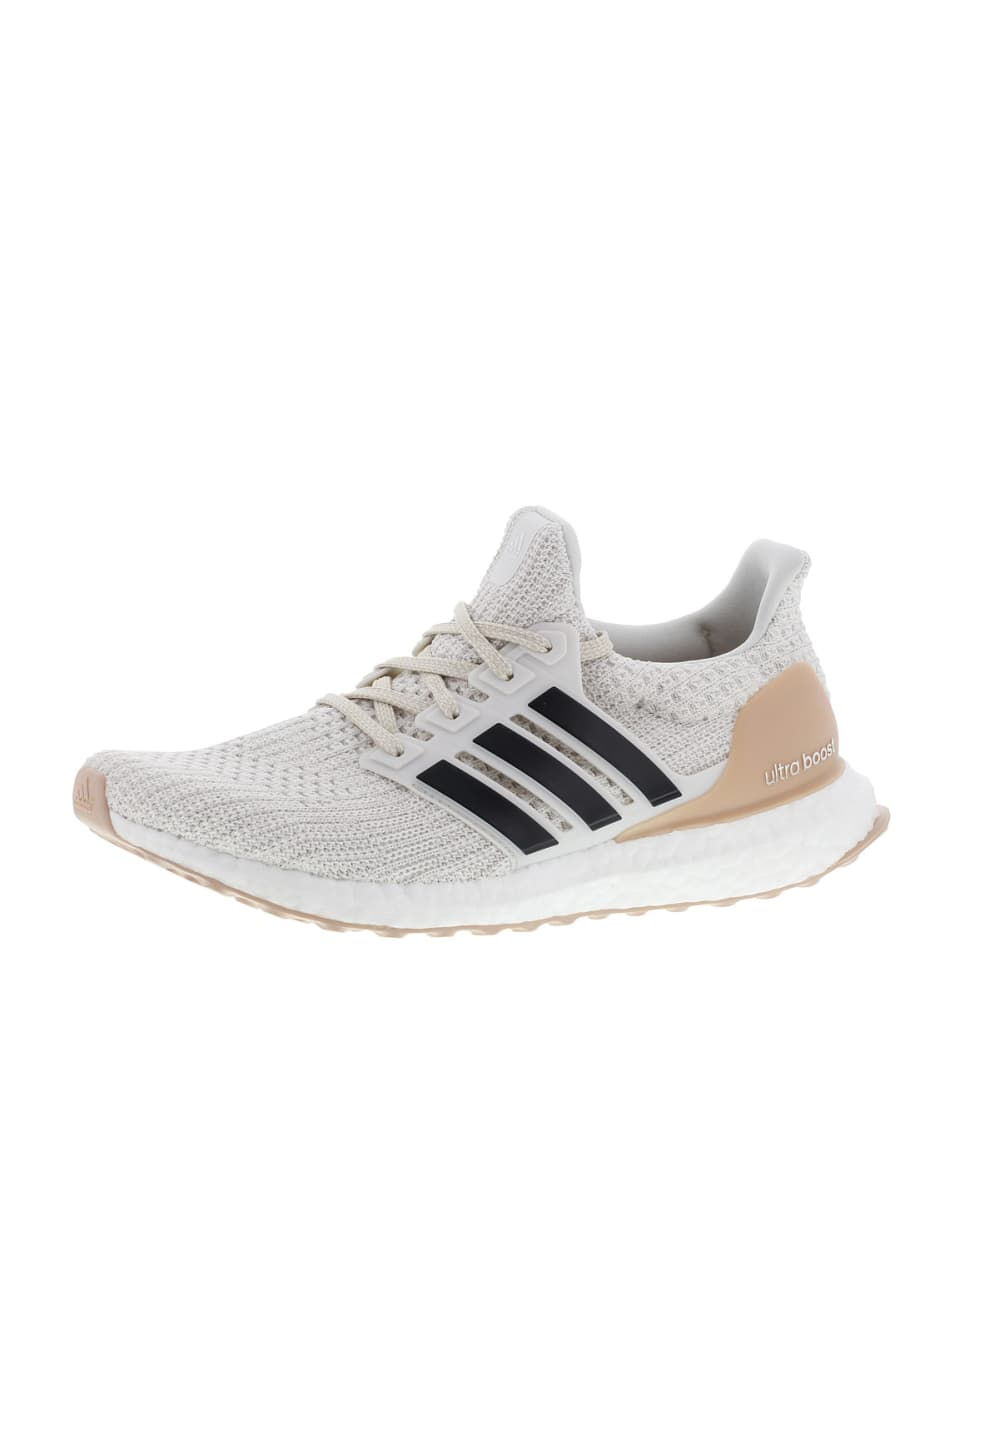 on sale bd8d4 4c67c adidas Ultra Boost - Running shoes for Women - White